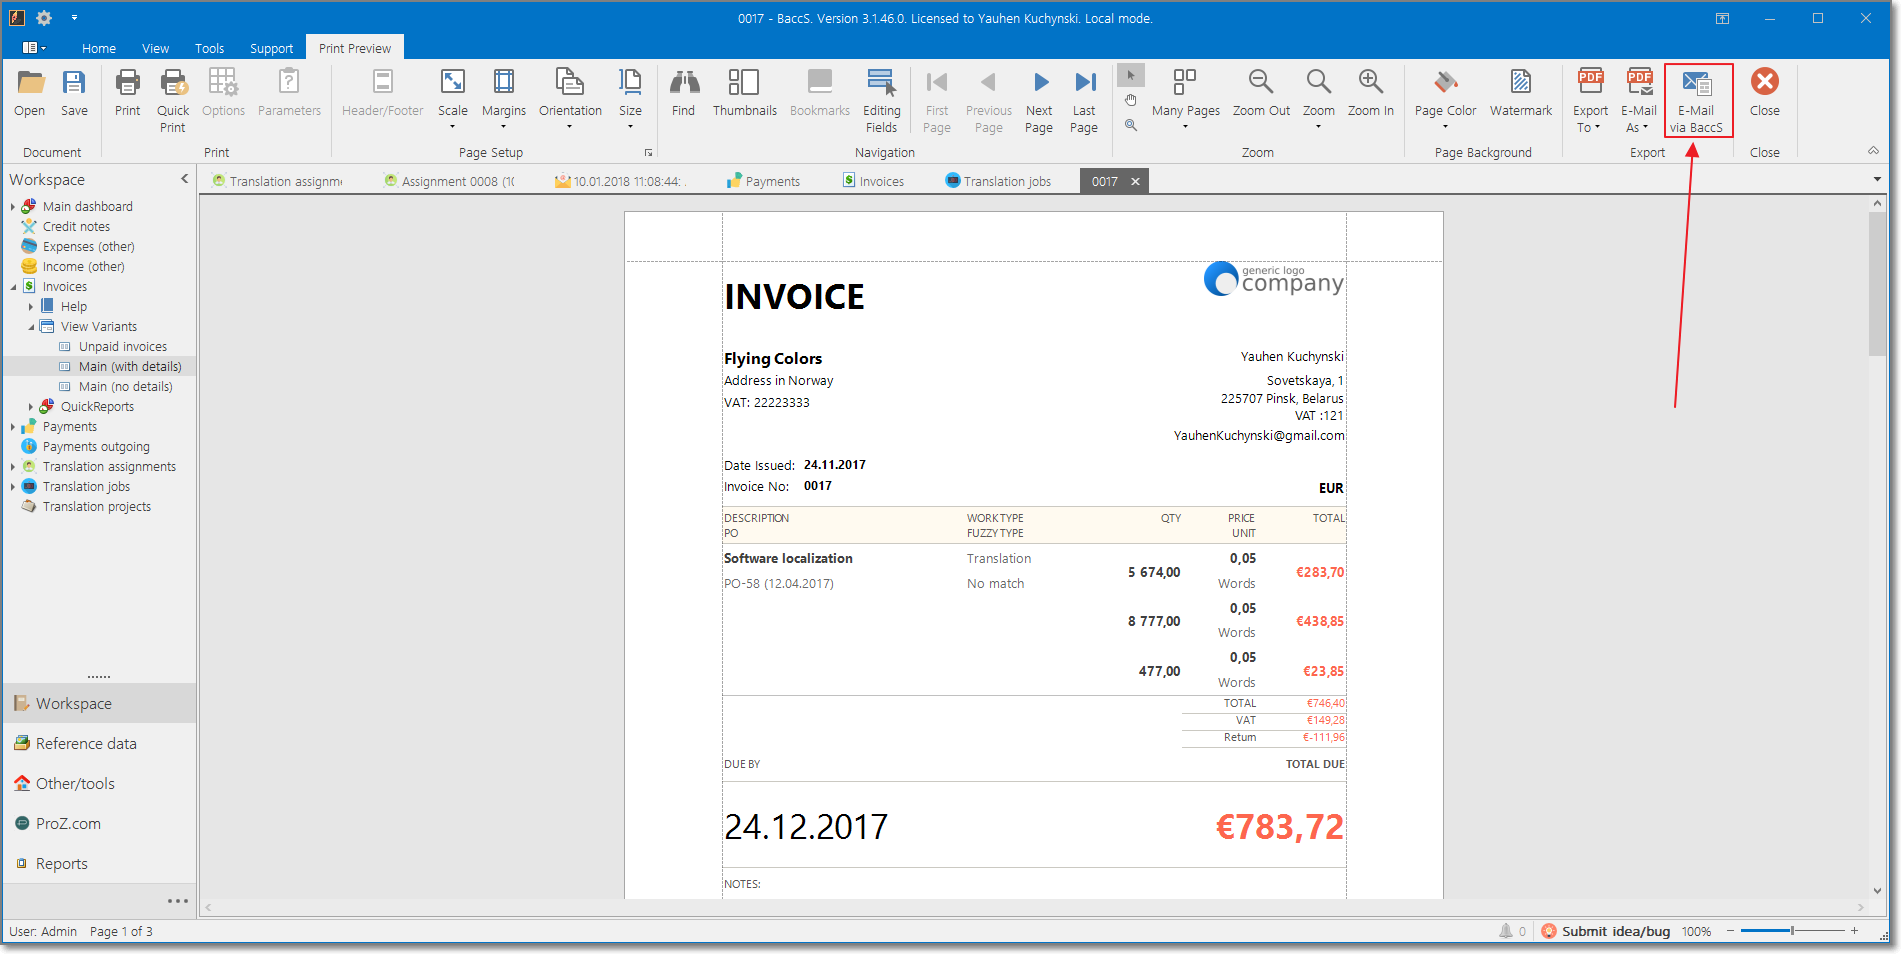 Invoice preview window